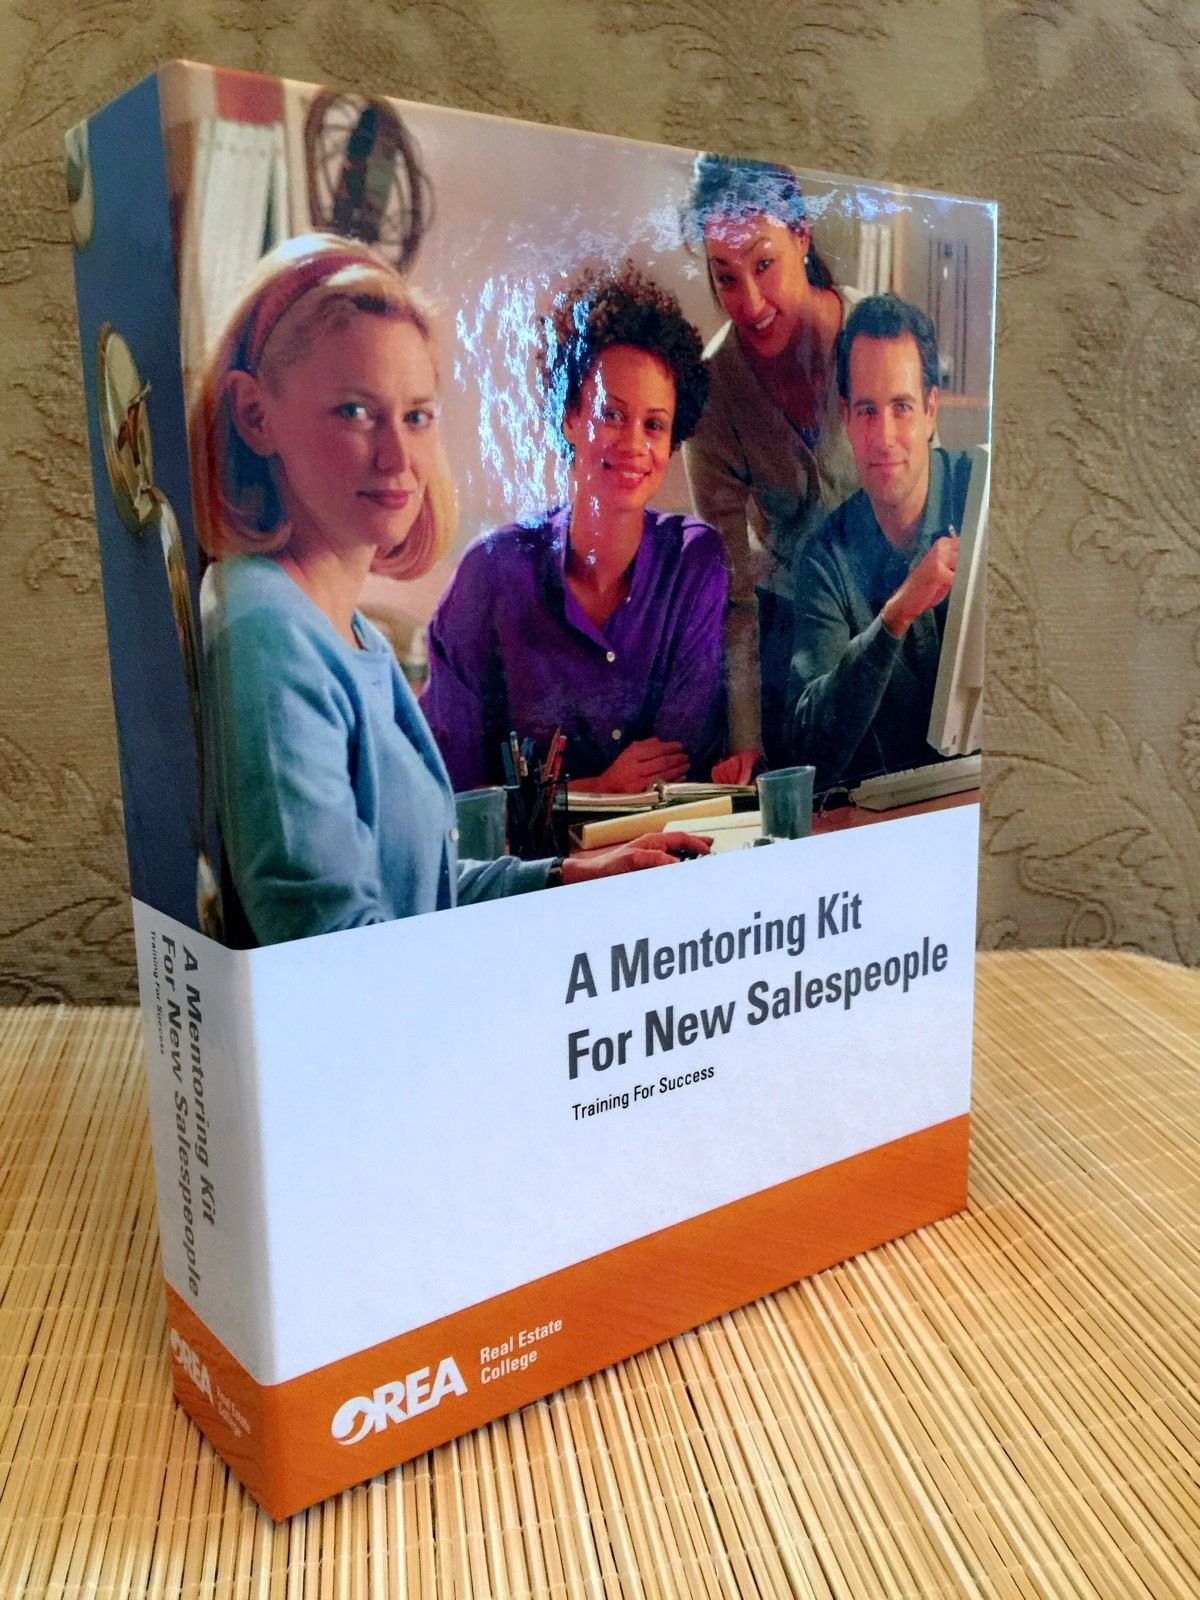 A Mentoring Kit for New Salespeople - Training for Success